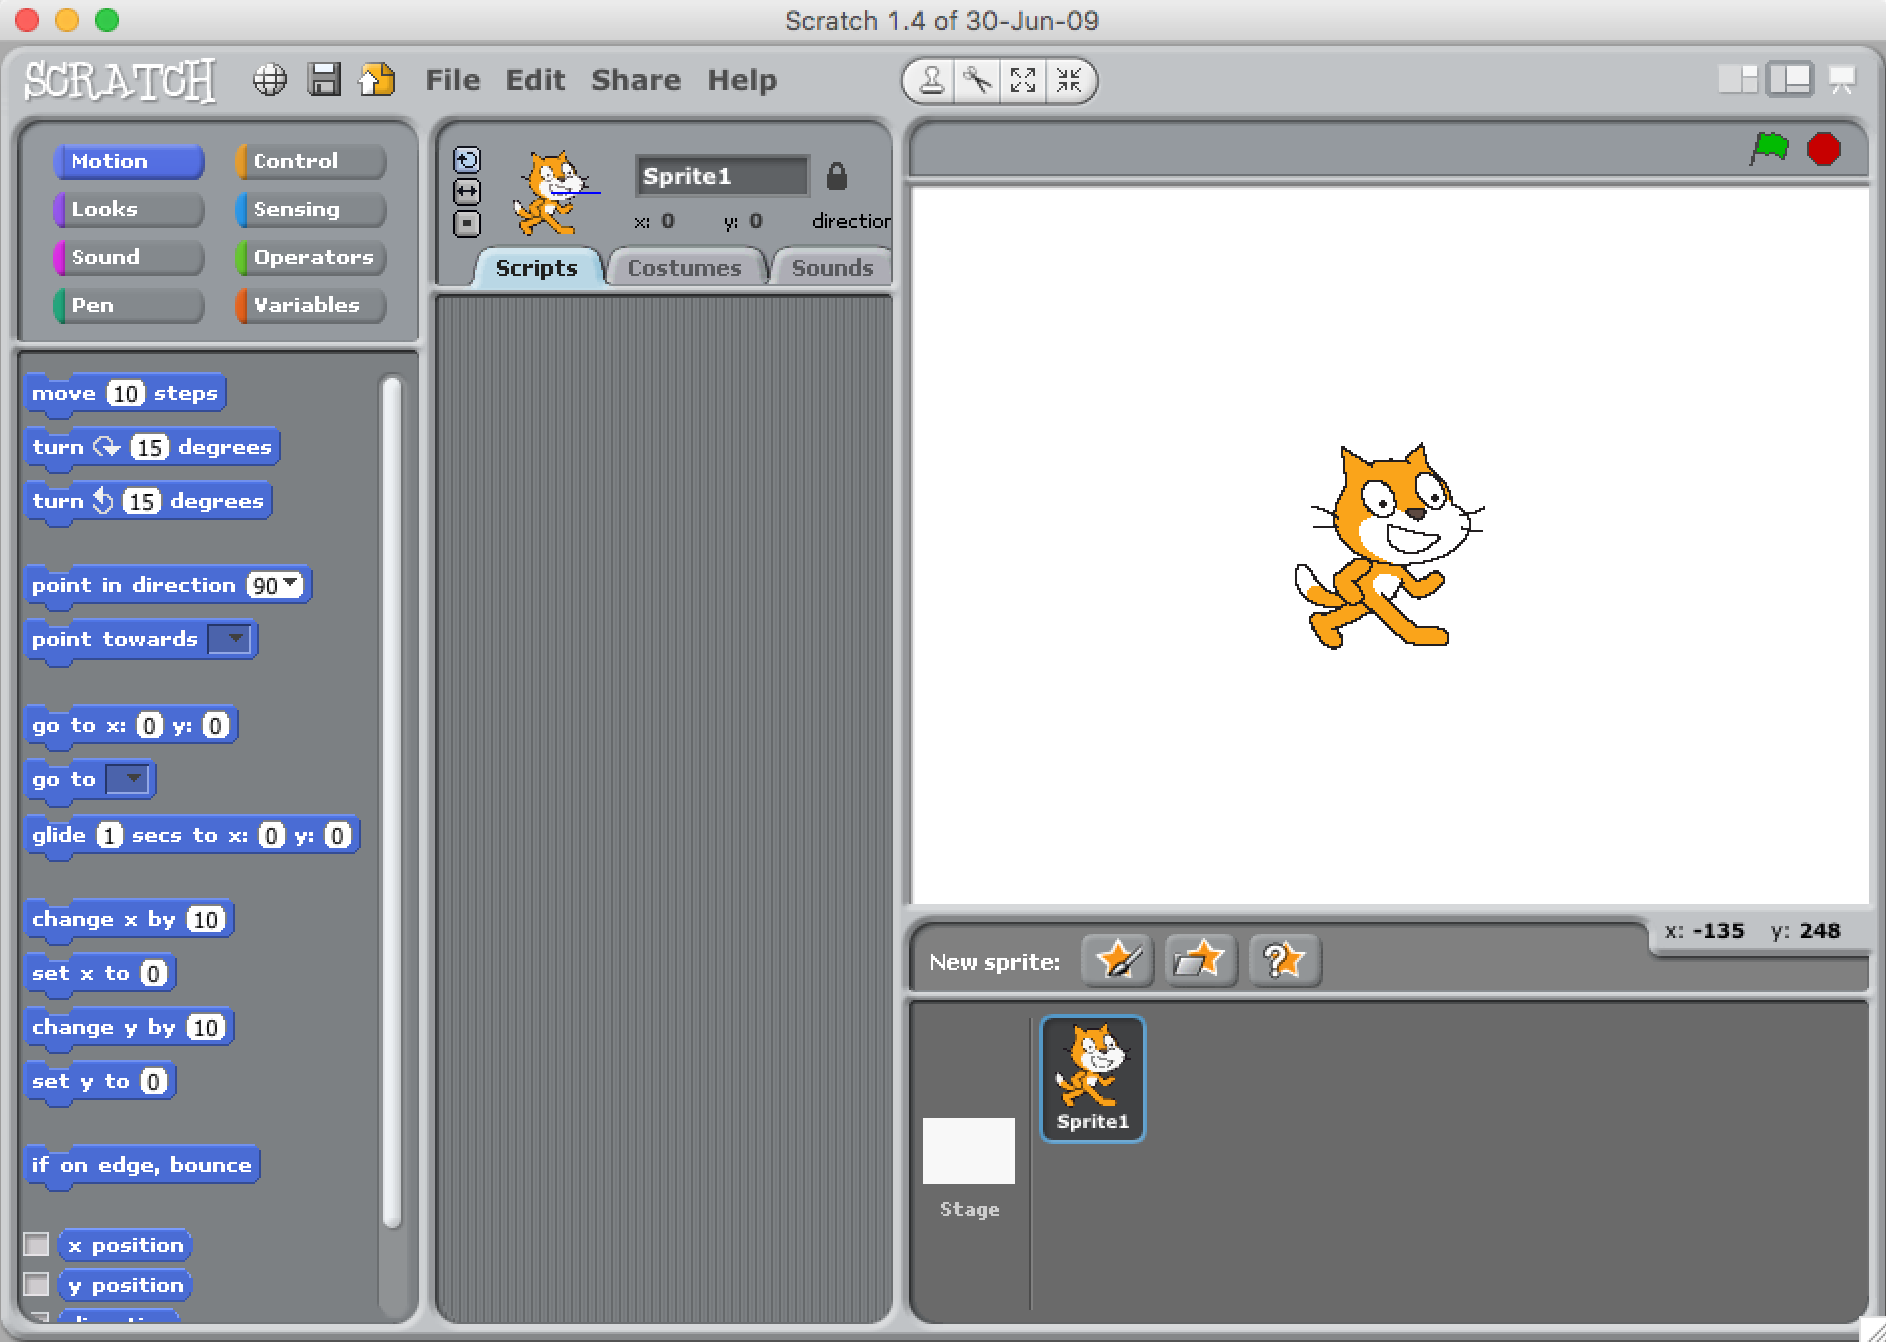 scratch mit edu/images/download/scratch1-4 png